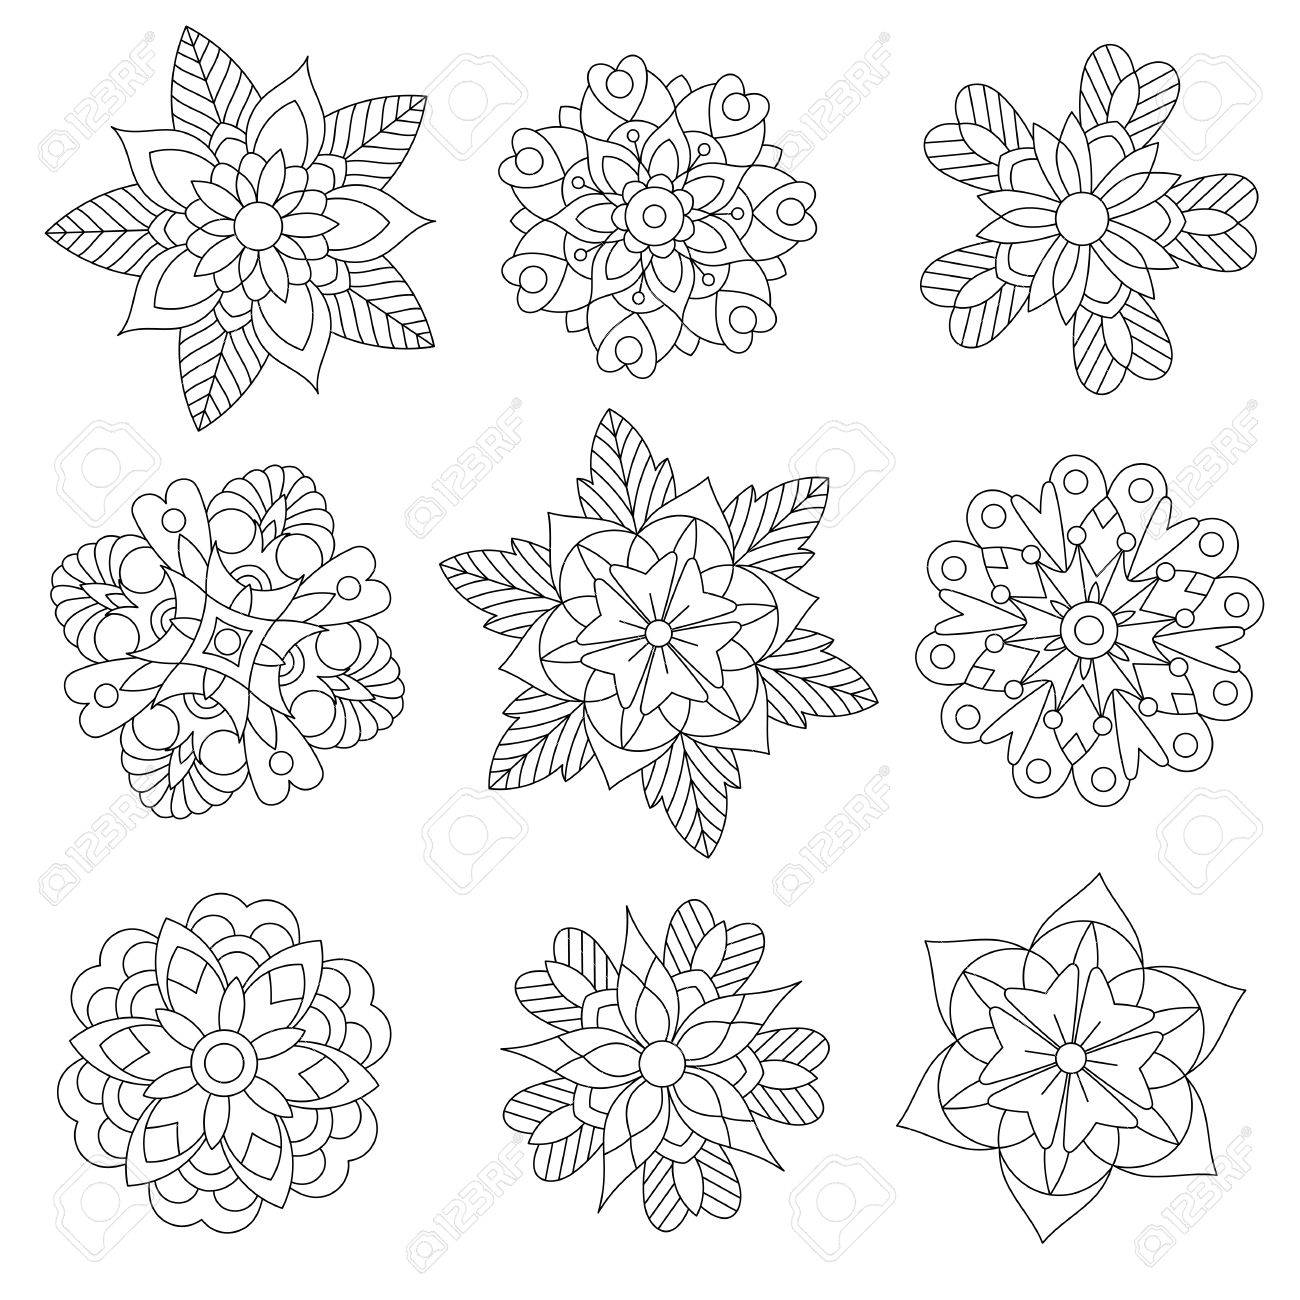 1300x1300 Coloring Page Christmas Floral Decorations. Collection